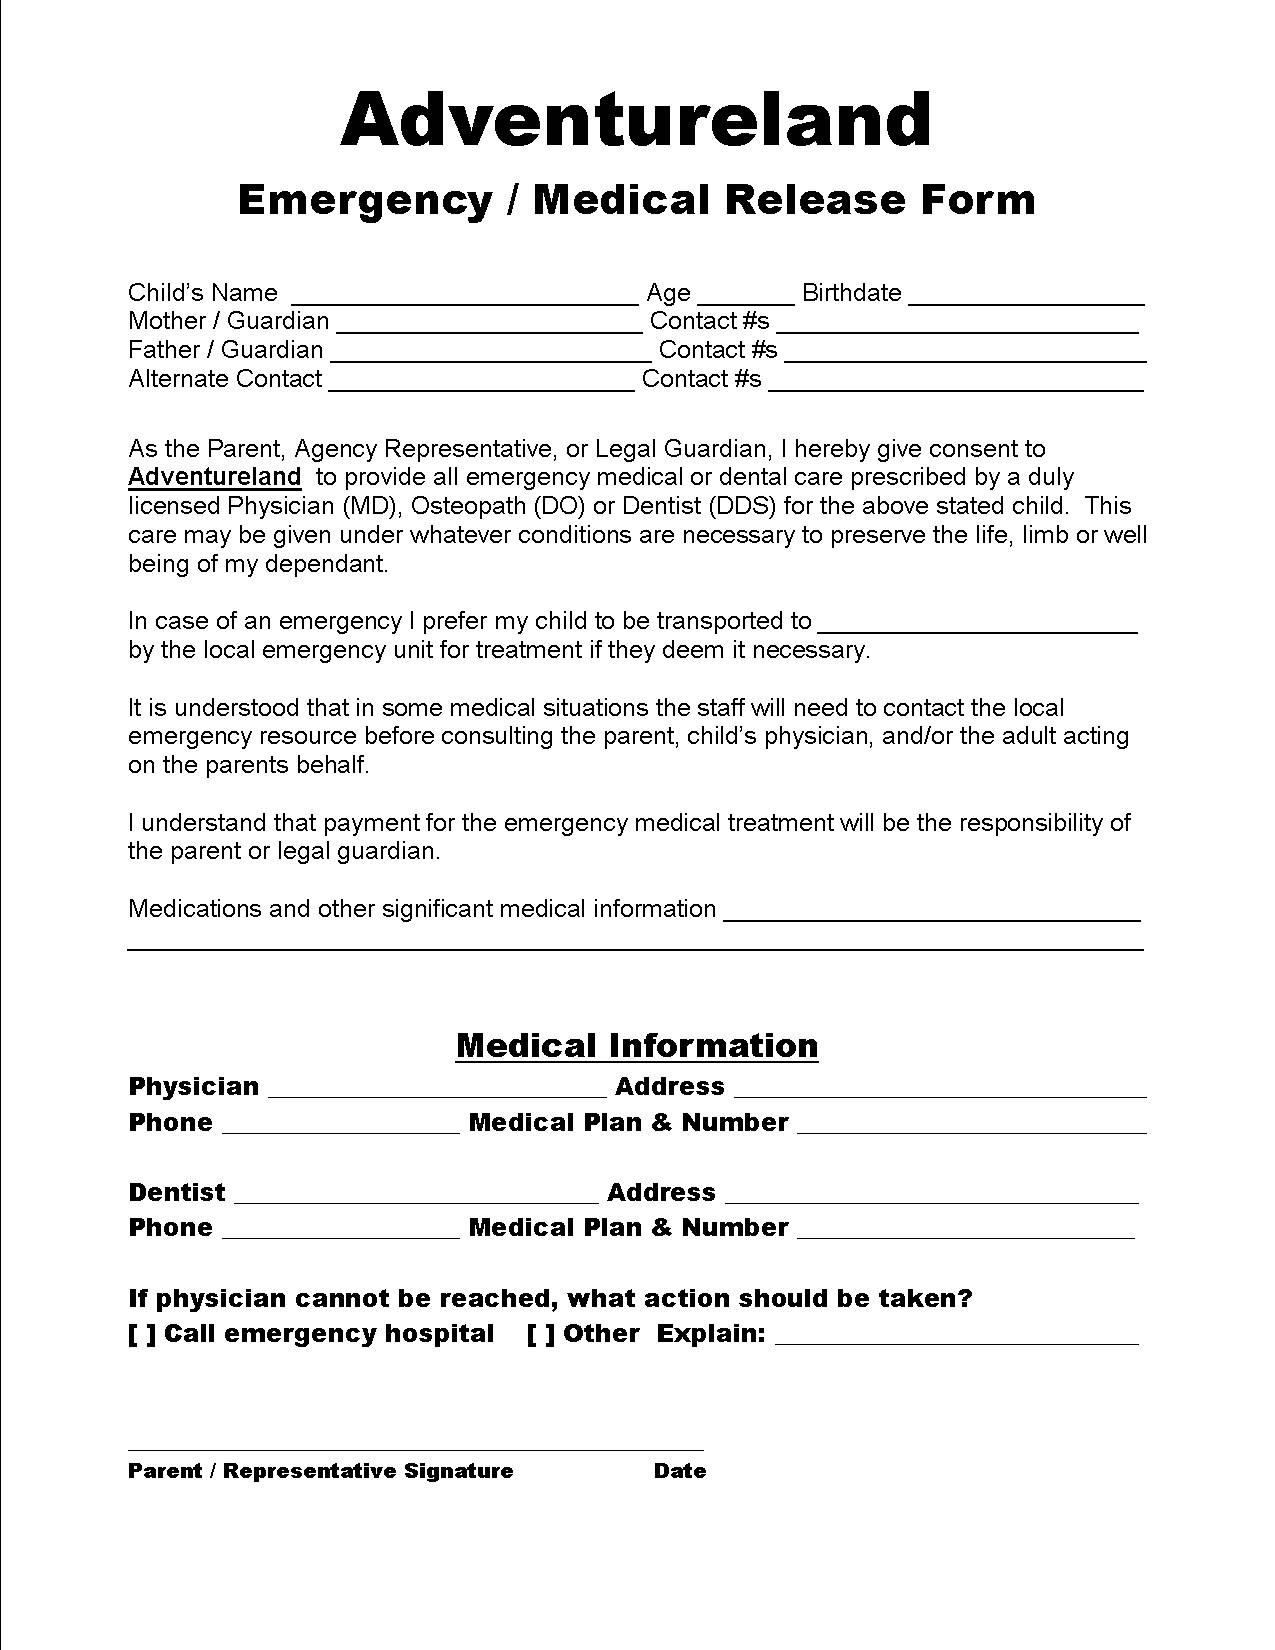 Emergency/ Contact Form · Emergency/ Medical Release ...